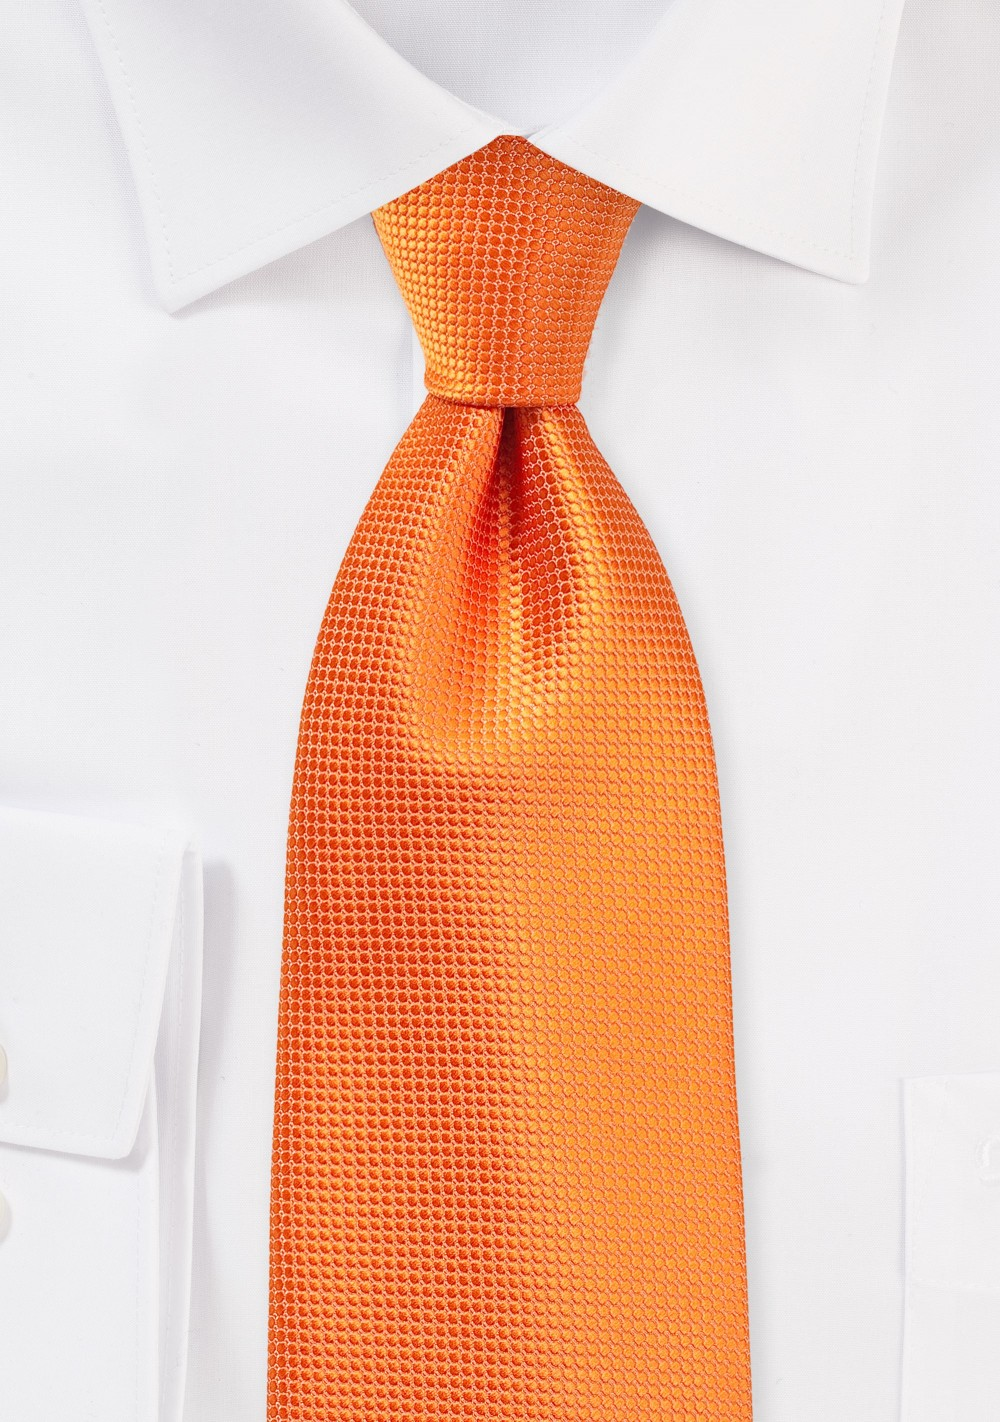 Nectarine Colored Tie